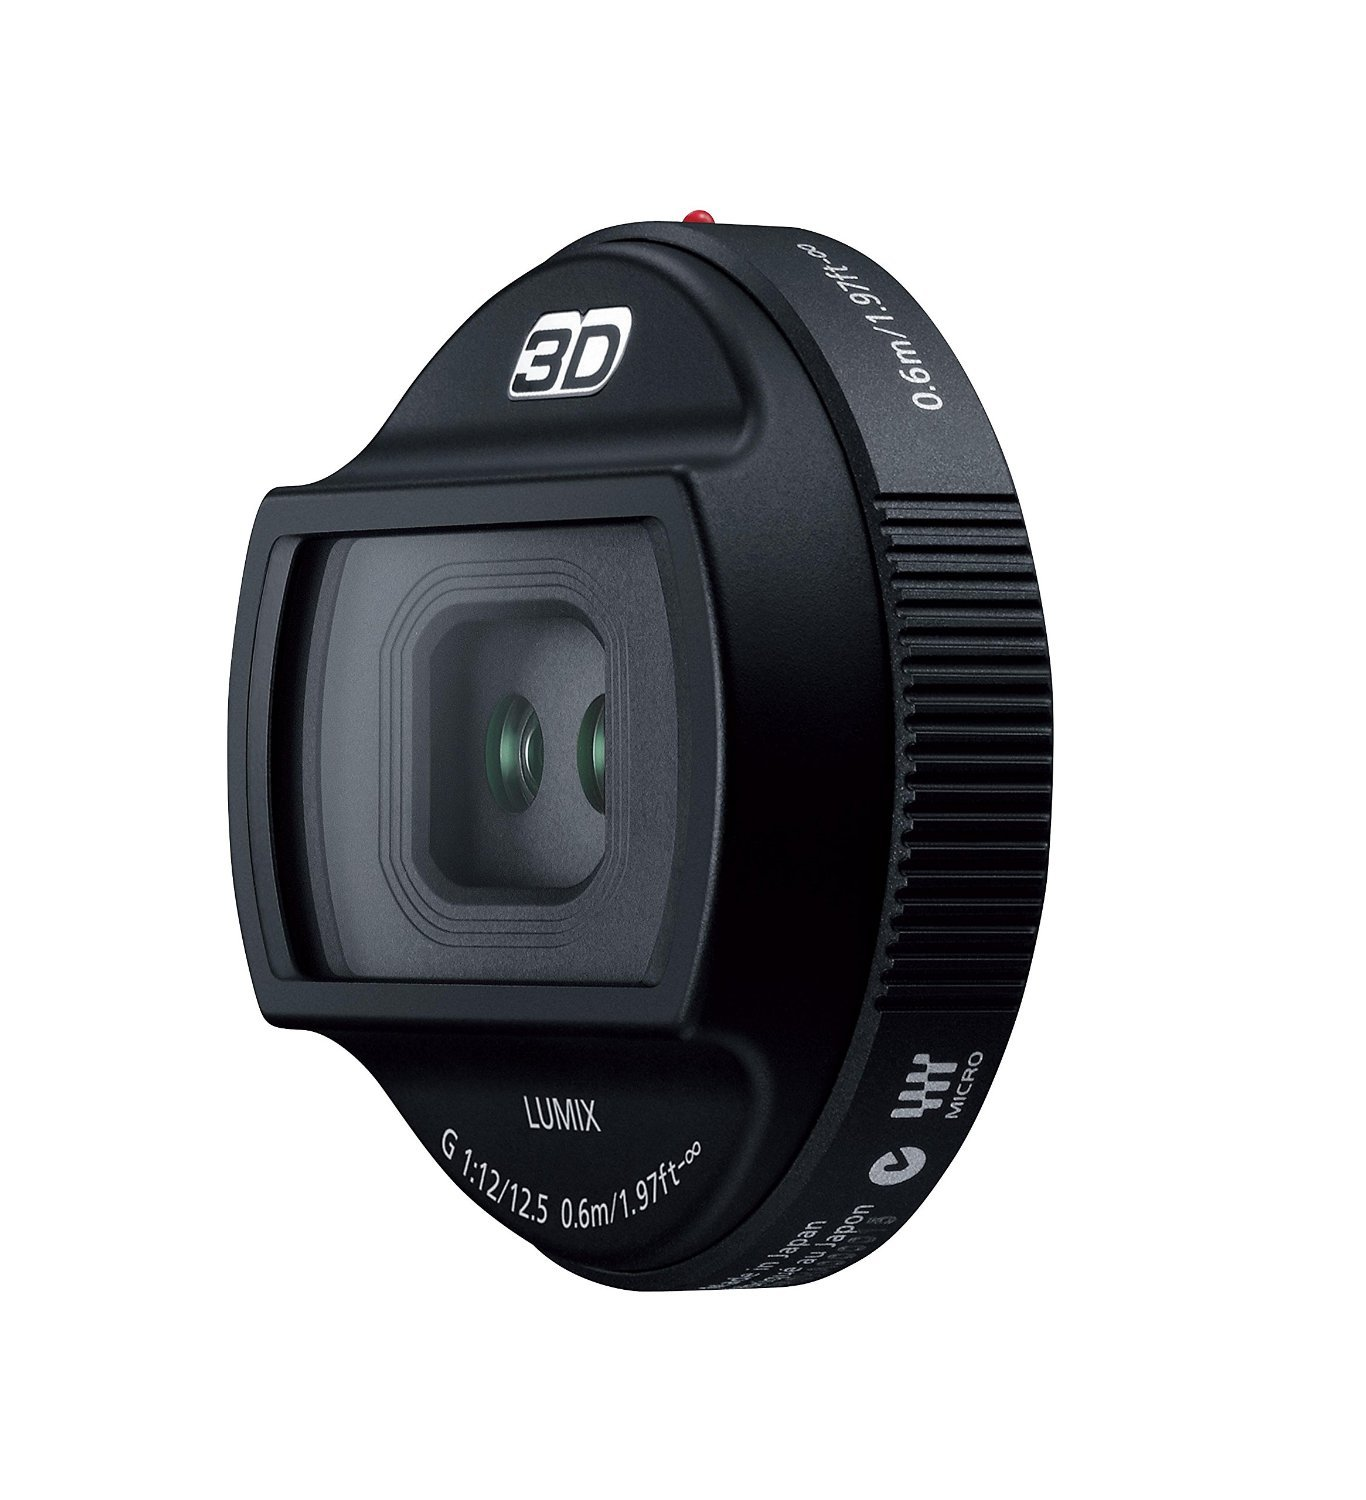 Panasonic 12.5mm F12 Single-Focus 3D Lens G H-FT012 for Micro Four Thirds